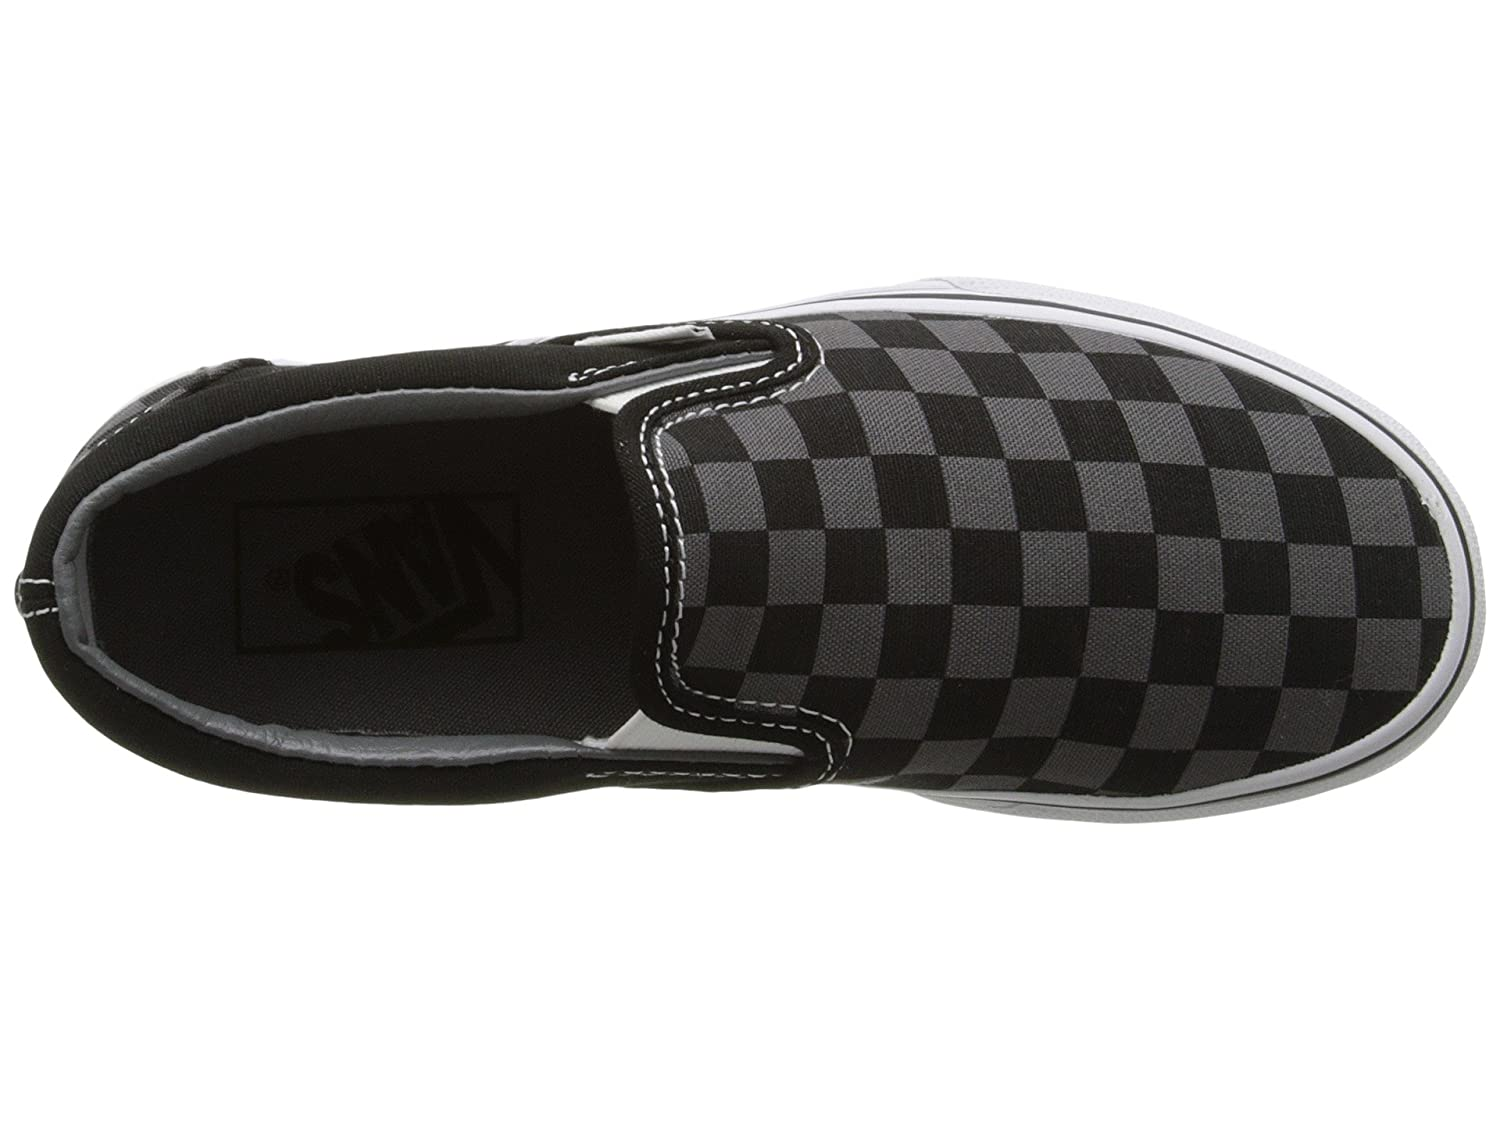 Vans Men's Classic Slip On (Suede & Suiting) Skateboarding Shoes B01M2TZUY2 7.5 M US Women / 6 M US Men|Black/Pewter Checkerboard